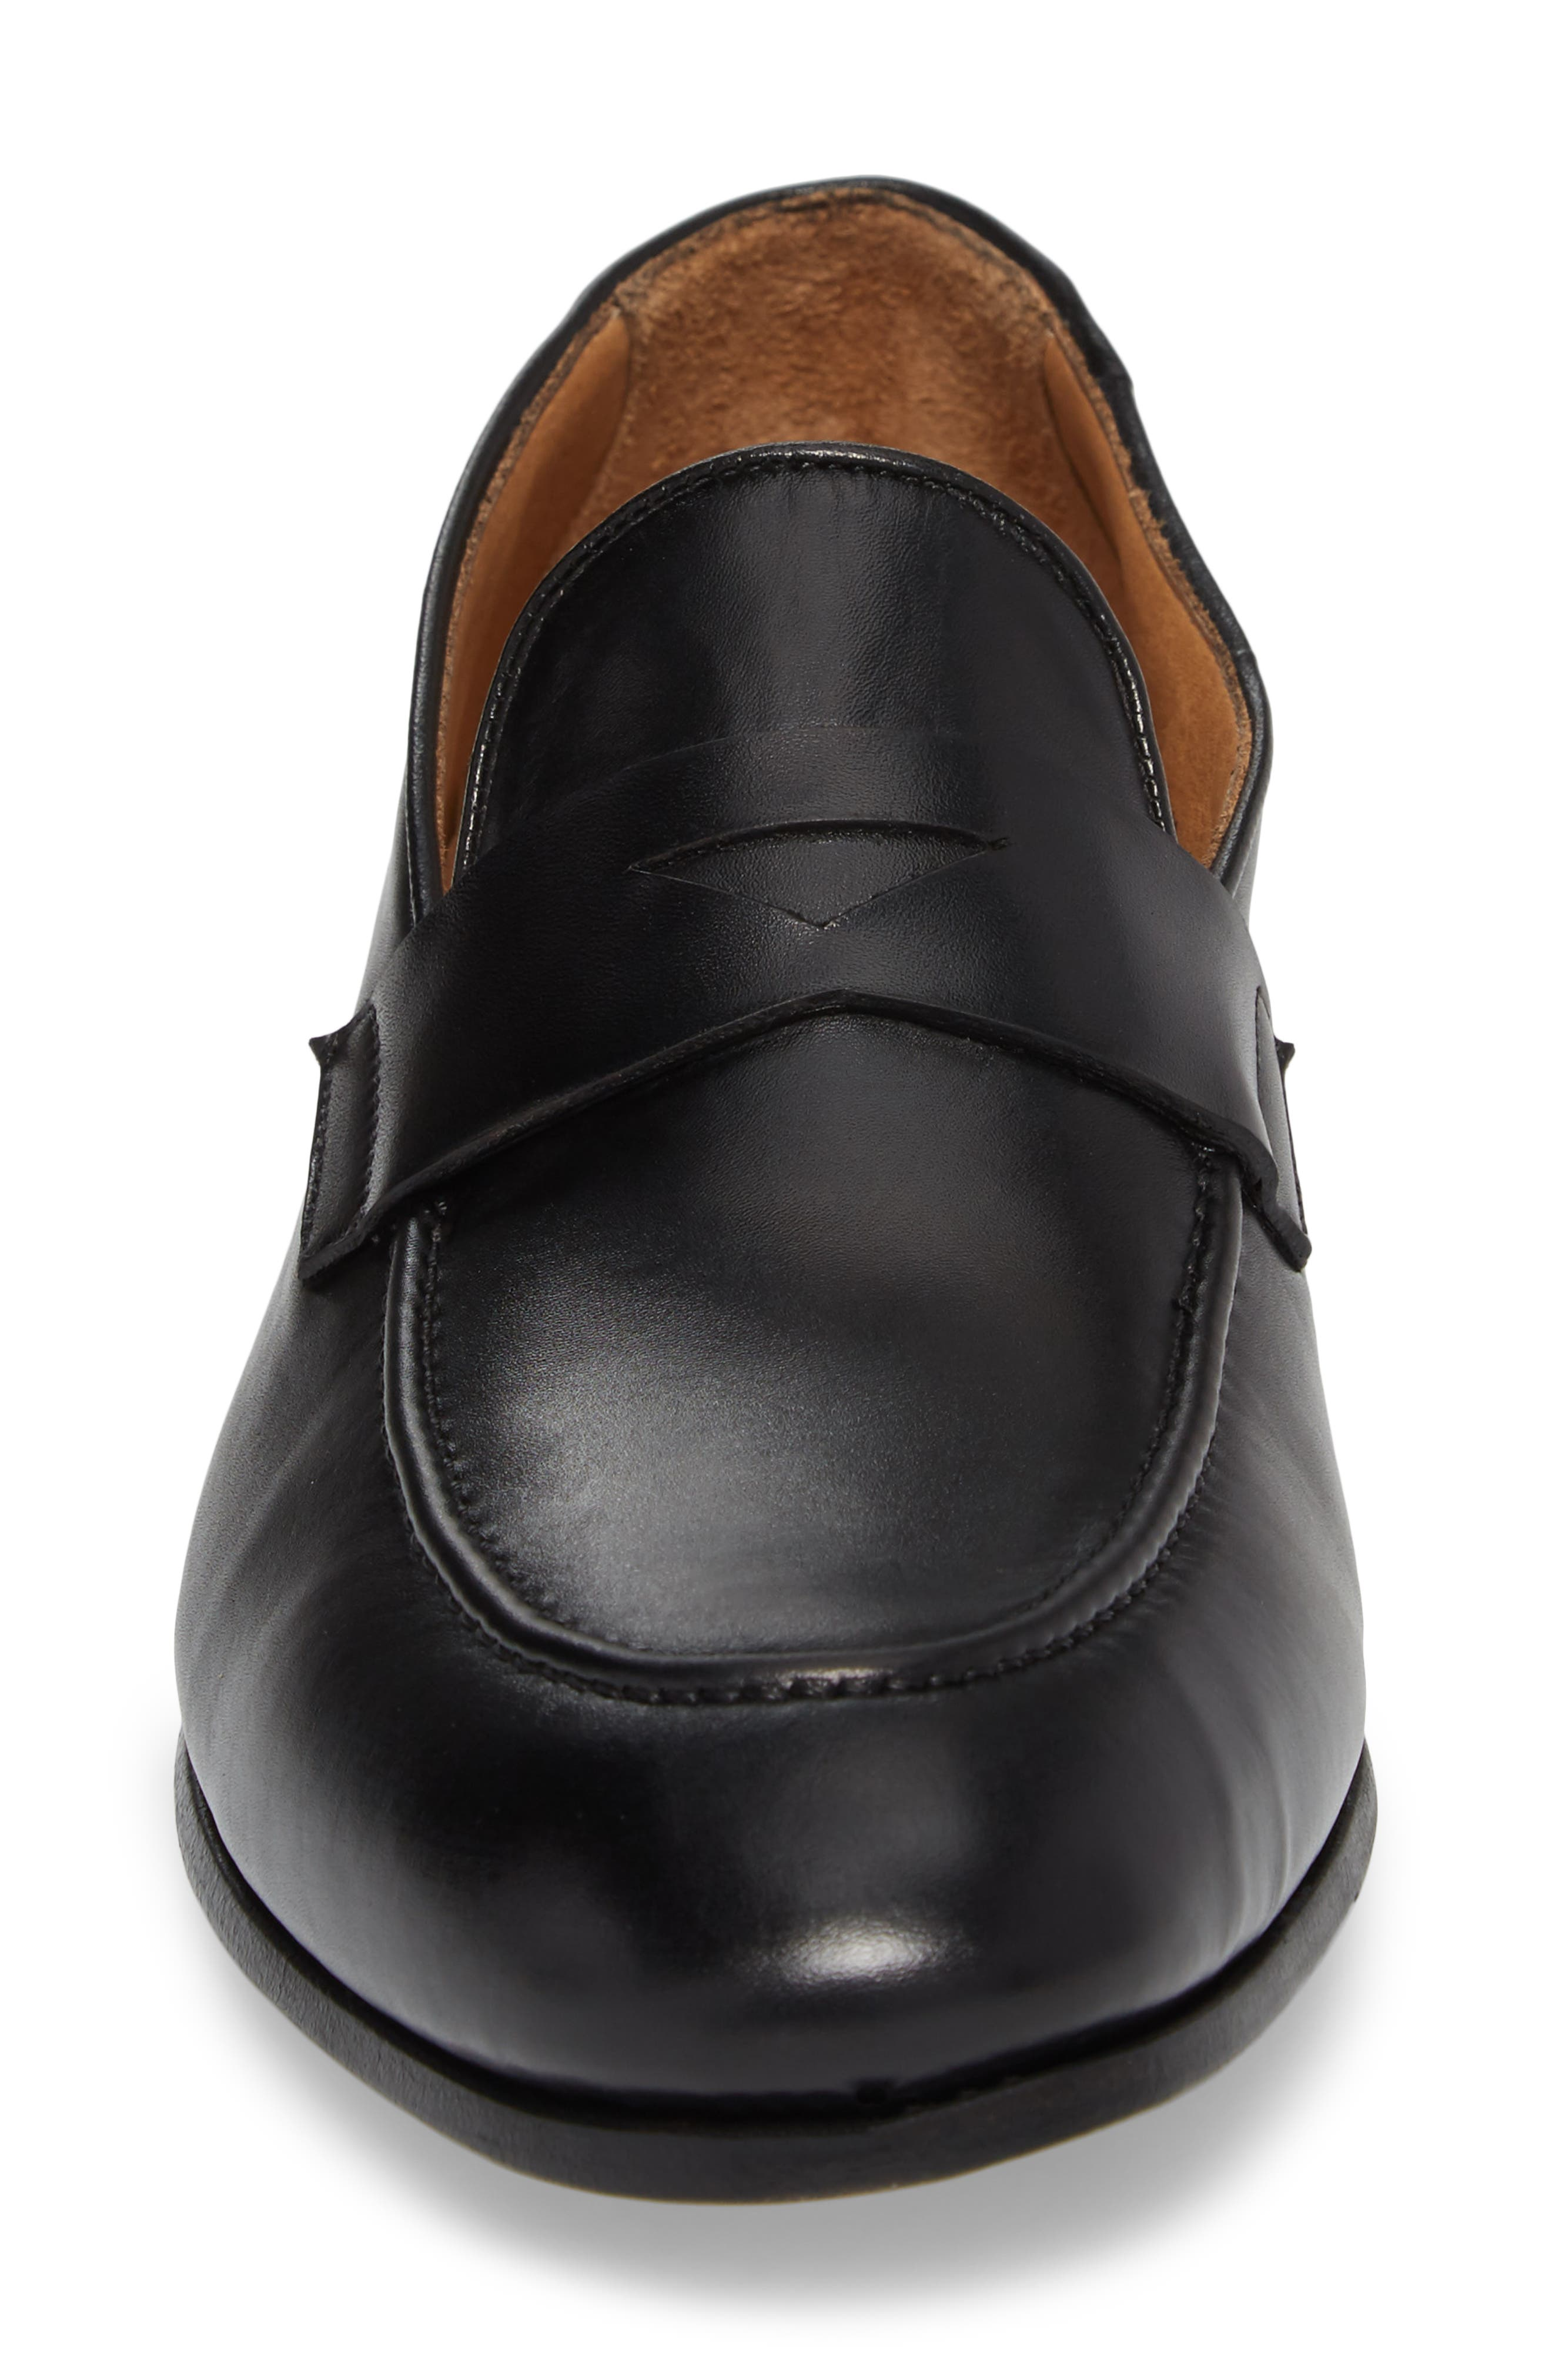 Alejo Apron Toe Penny Loafer,                             Alternate thumbnail 4, color,                             BLACK LEATHER